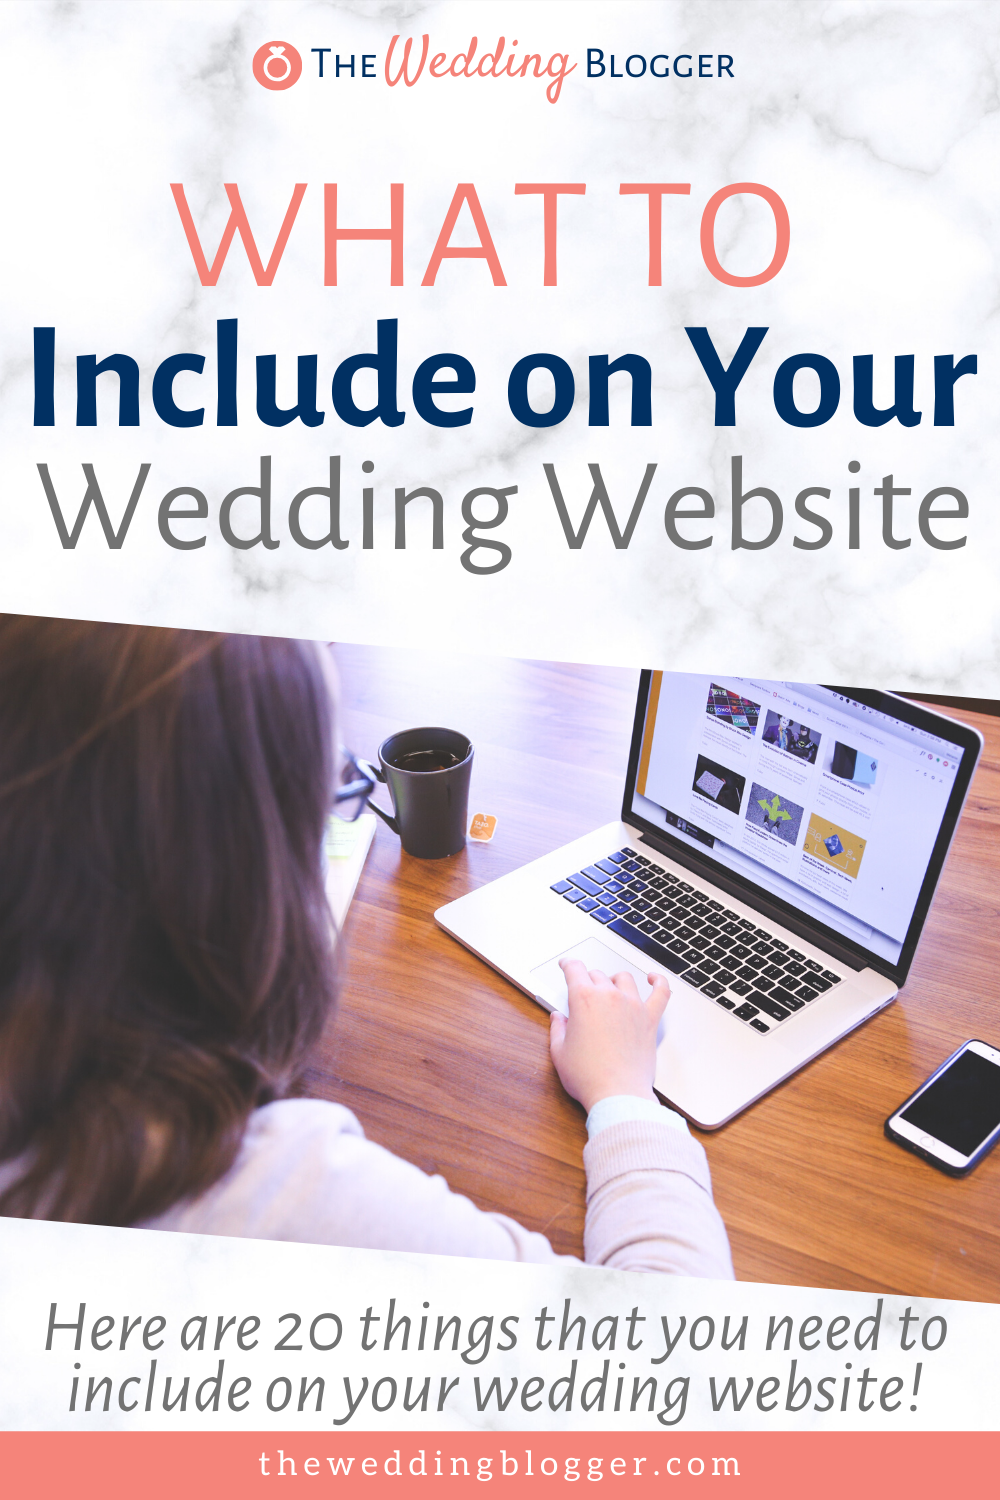 Find out what to put on your wedding website and other